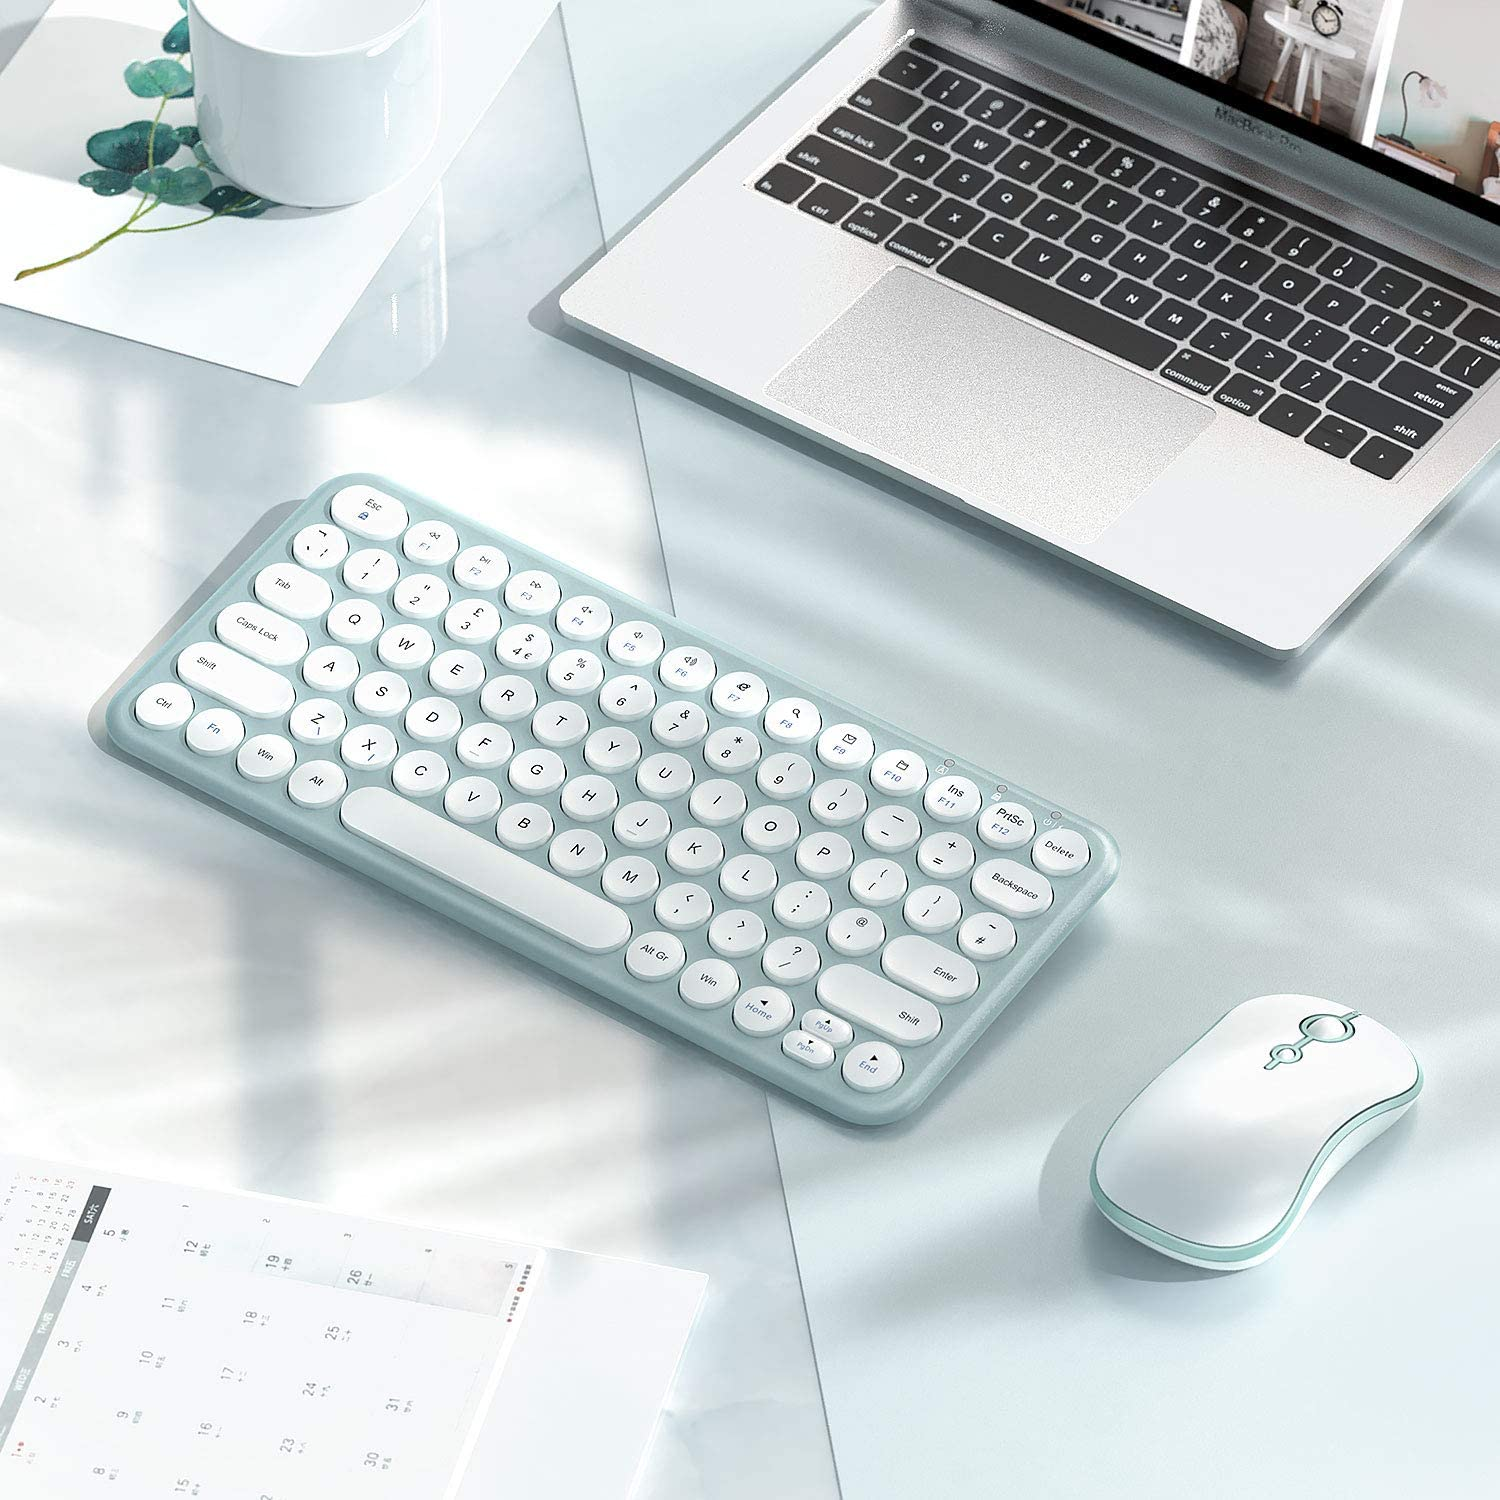 Green /& White Rechargeable Keyboard and Mouse Small Low Profile Compact Keyboard and Mouse Set for Windows Devices Wireless Keyboard Mouse UK Layout